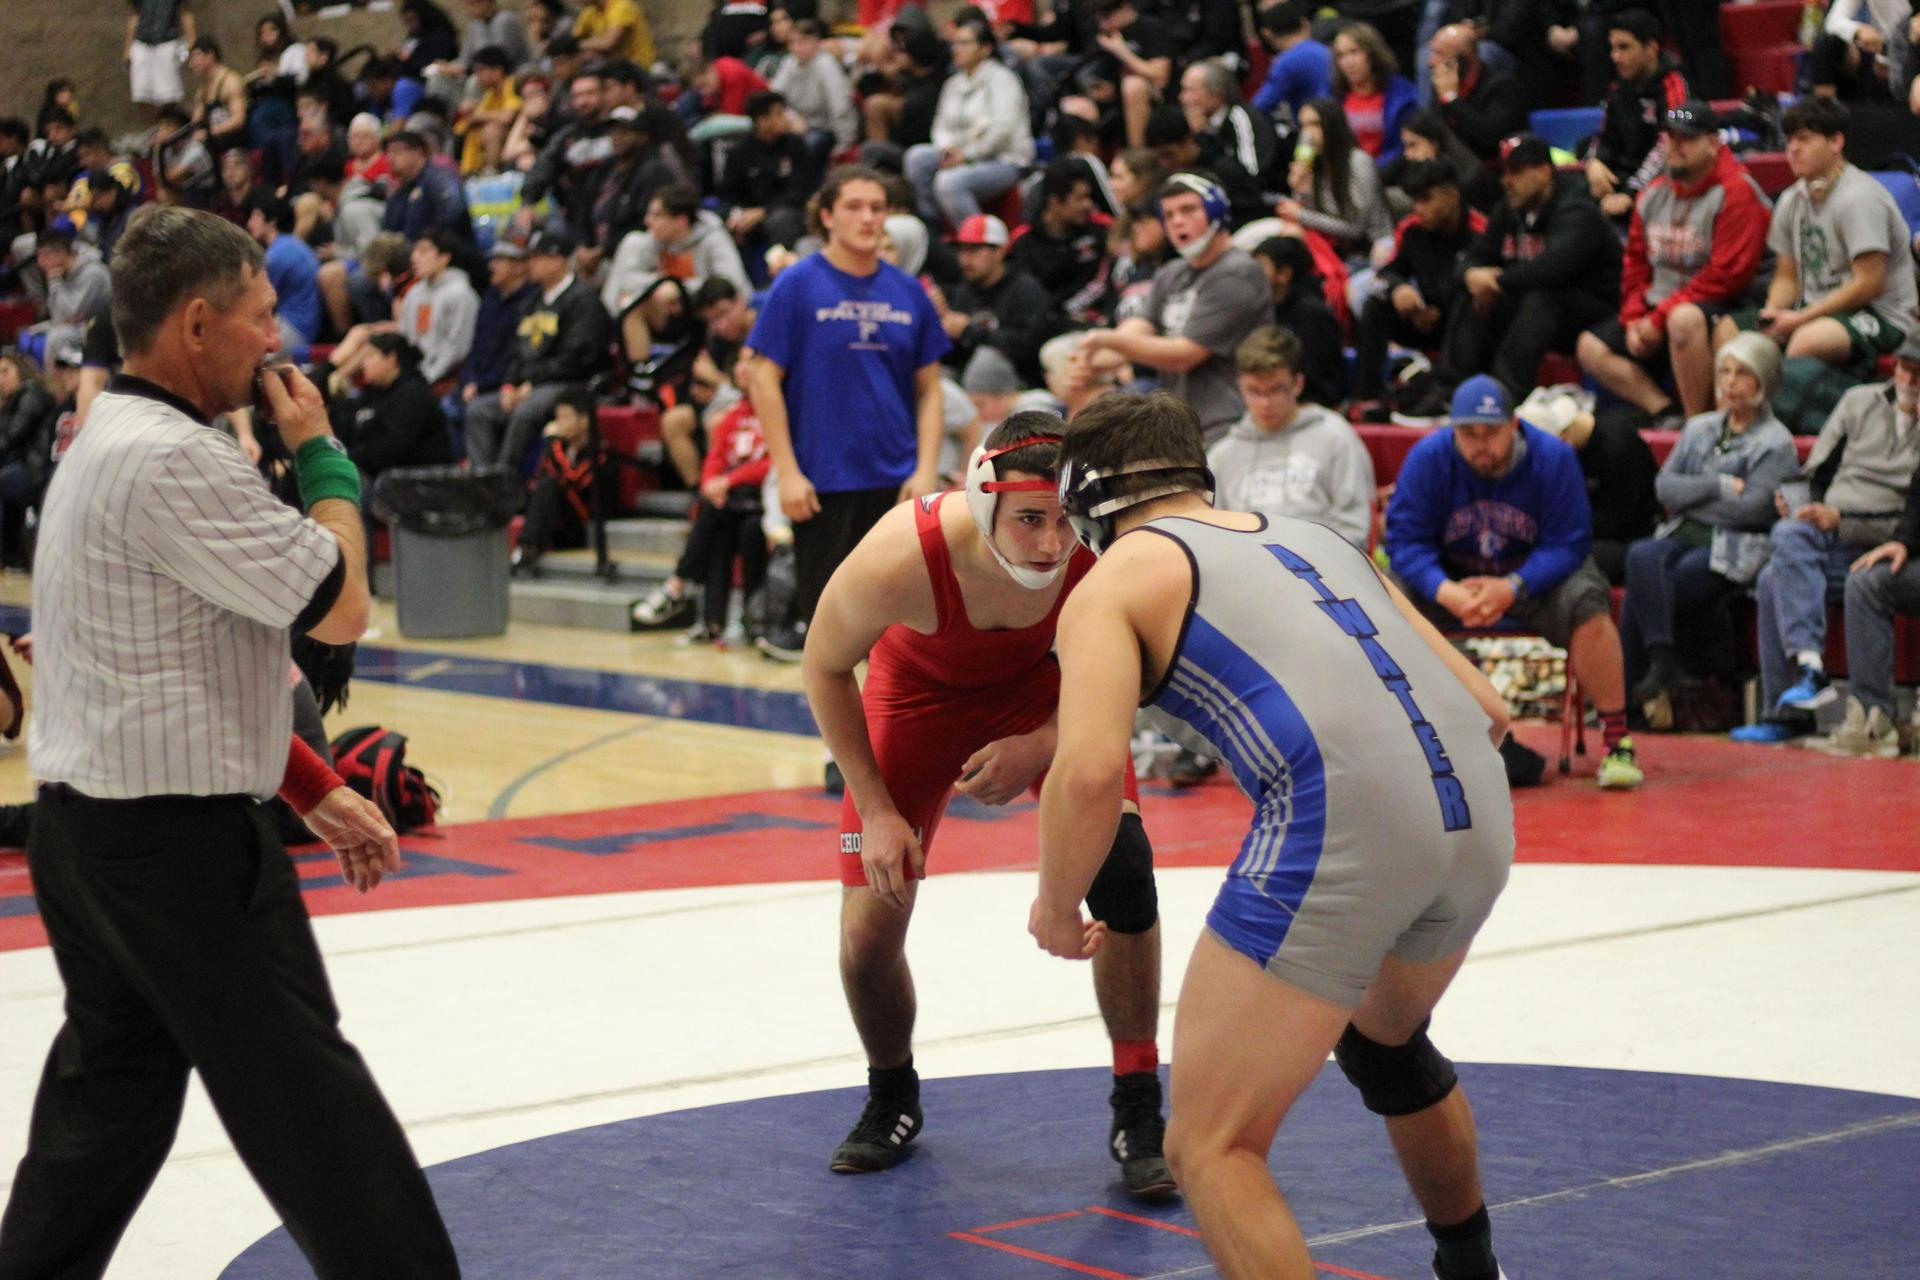 Chowchilla high athletes wrestling in Firebaugh